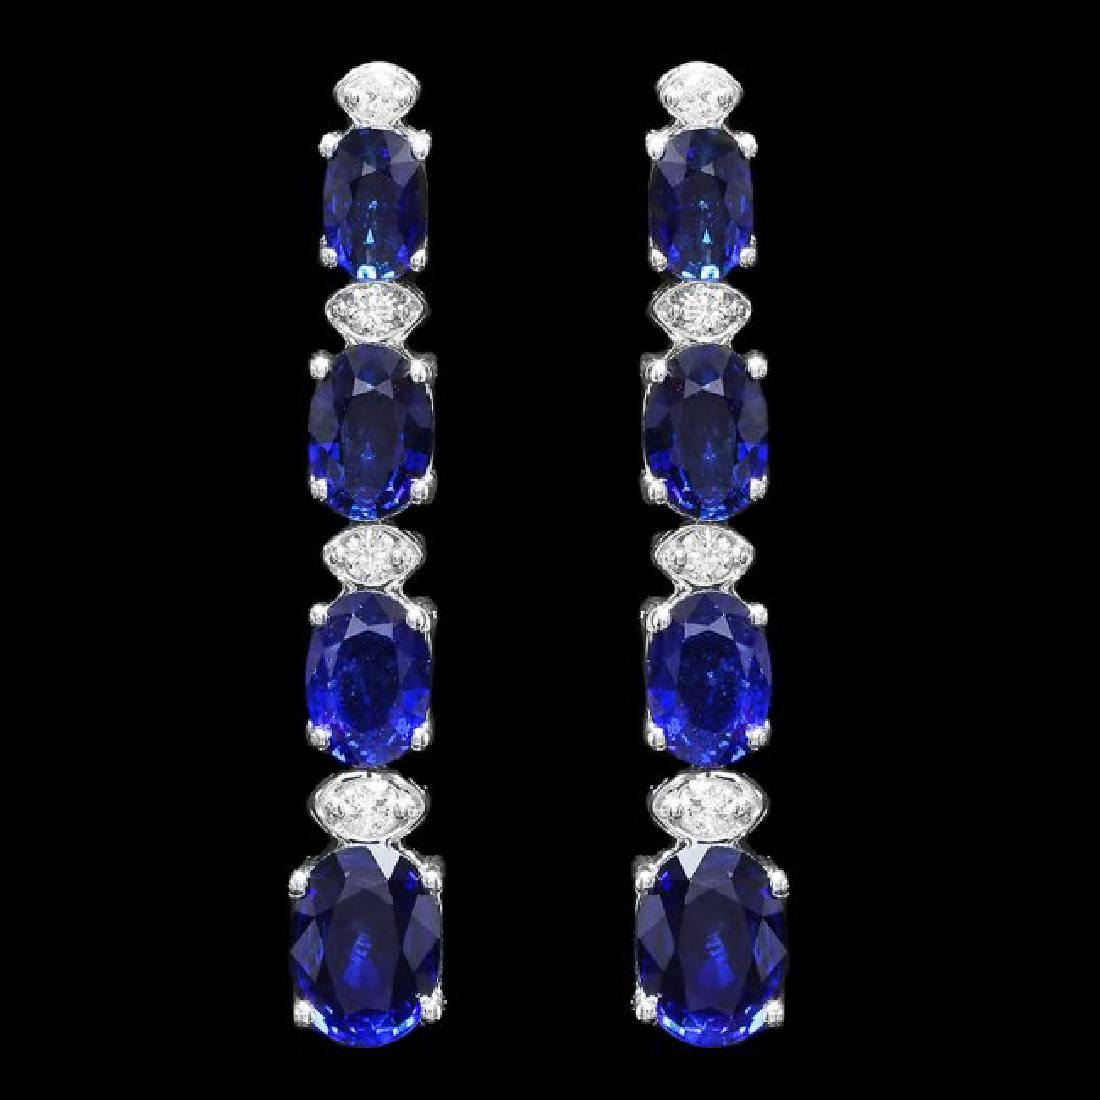 14k Gold 6.50ct Sapphire 0.30ct Diamond Earrings